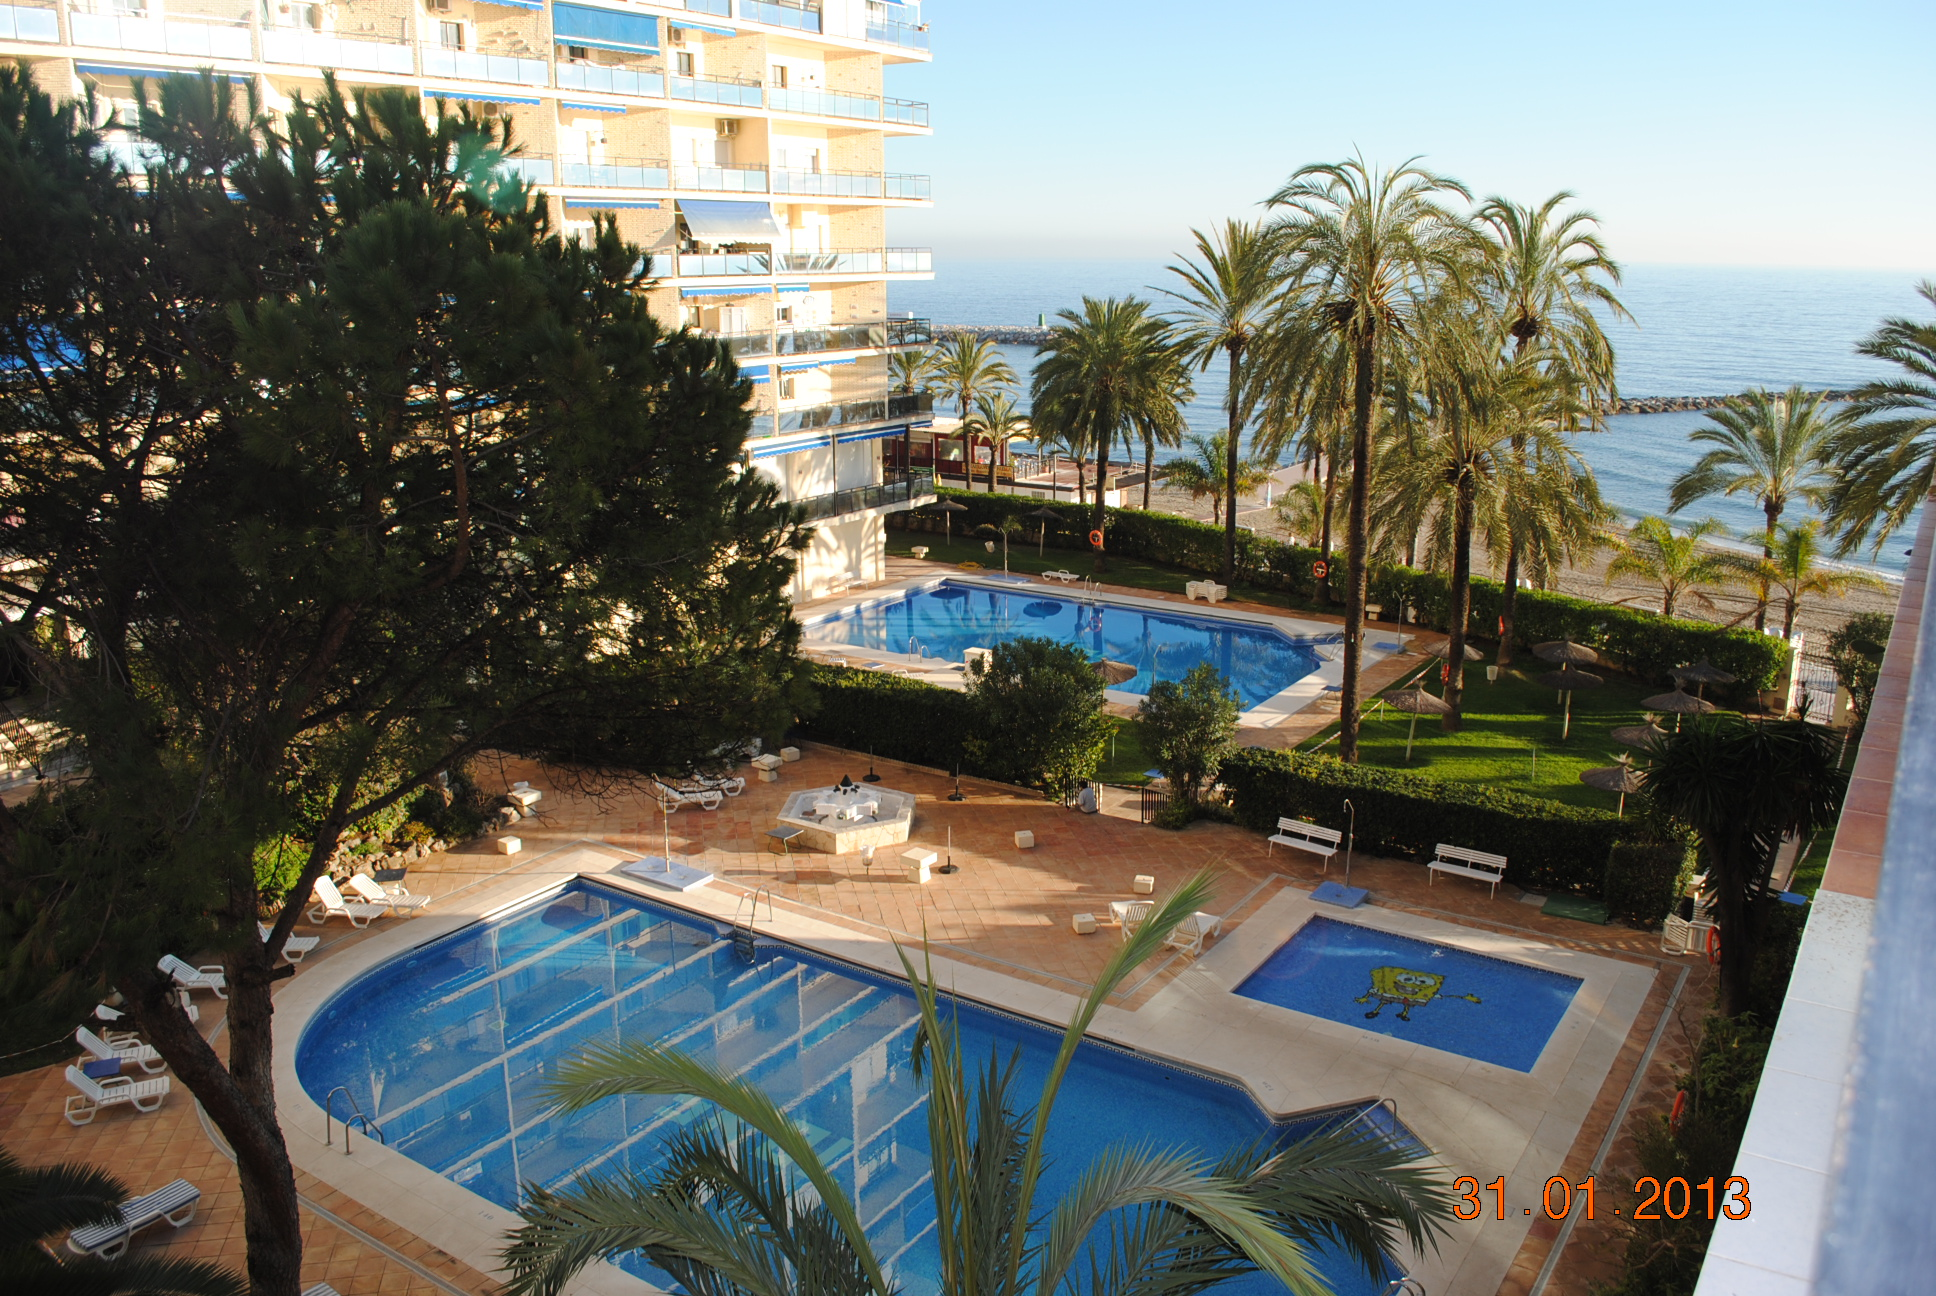 Skol apartments, Marbella – apt 424C 1 bed